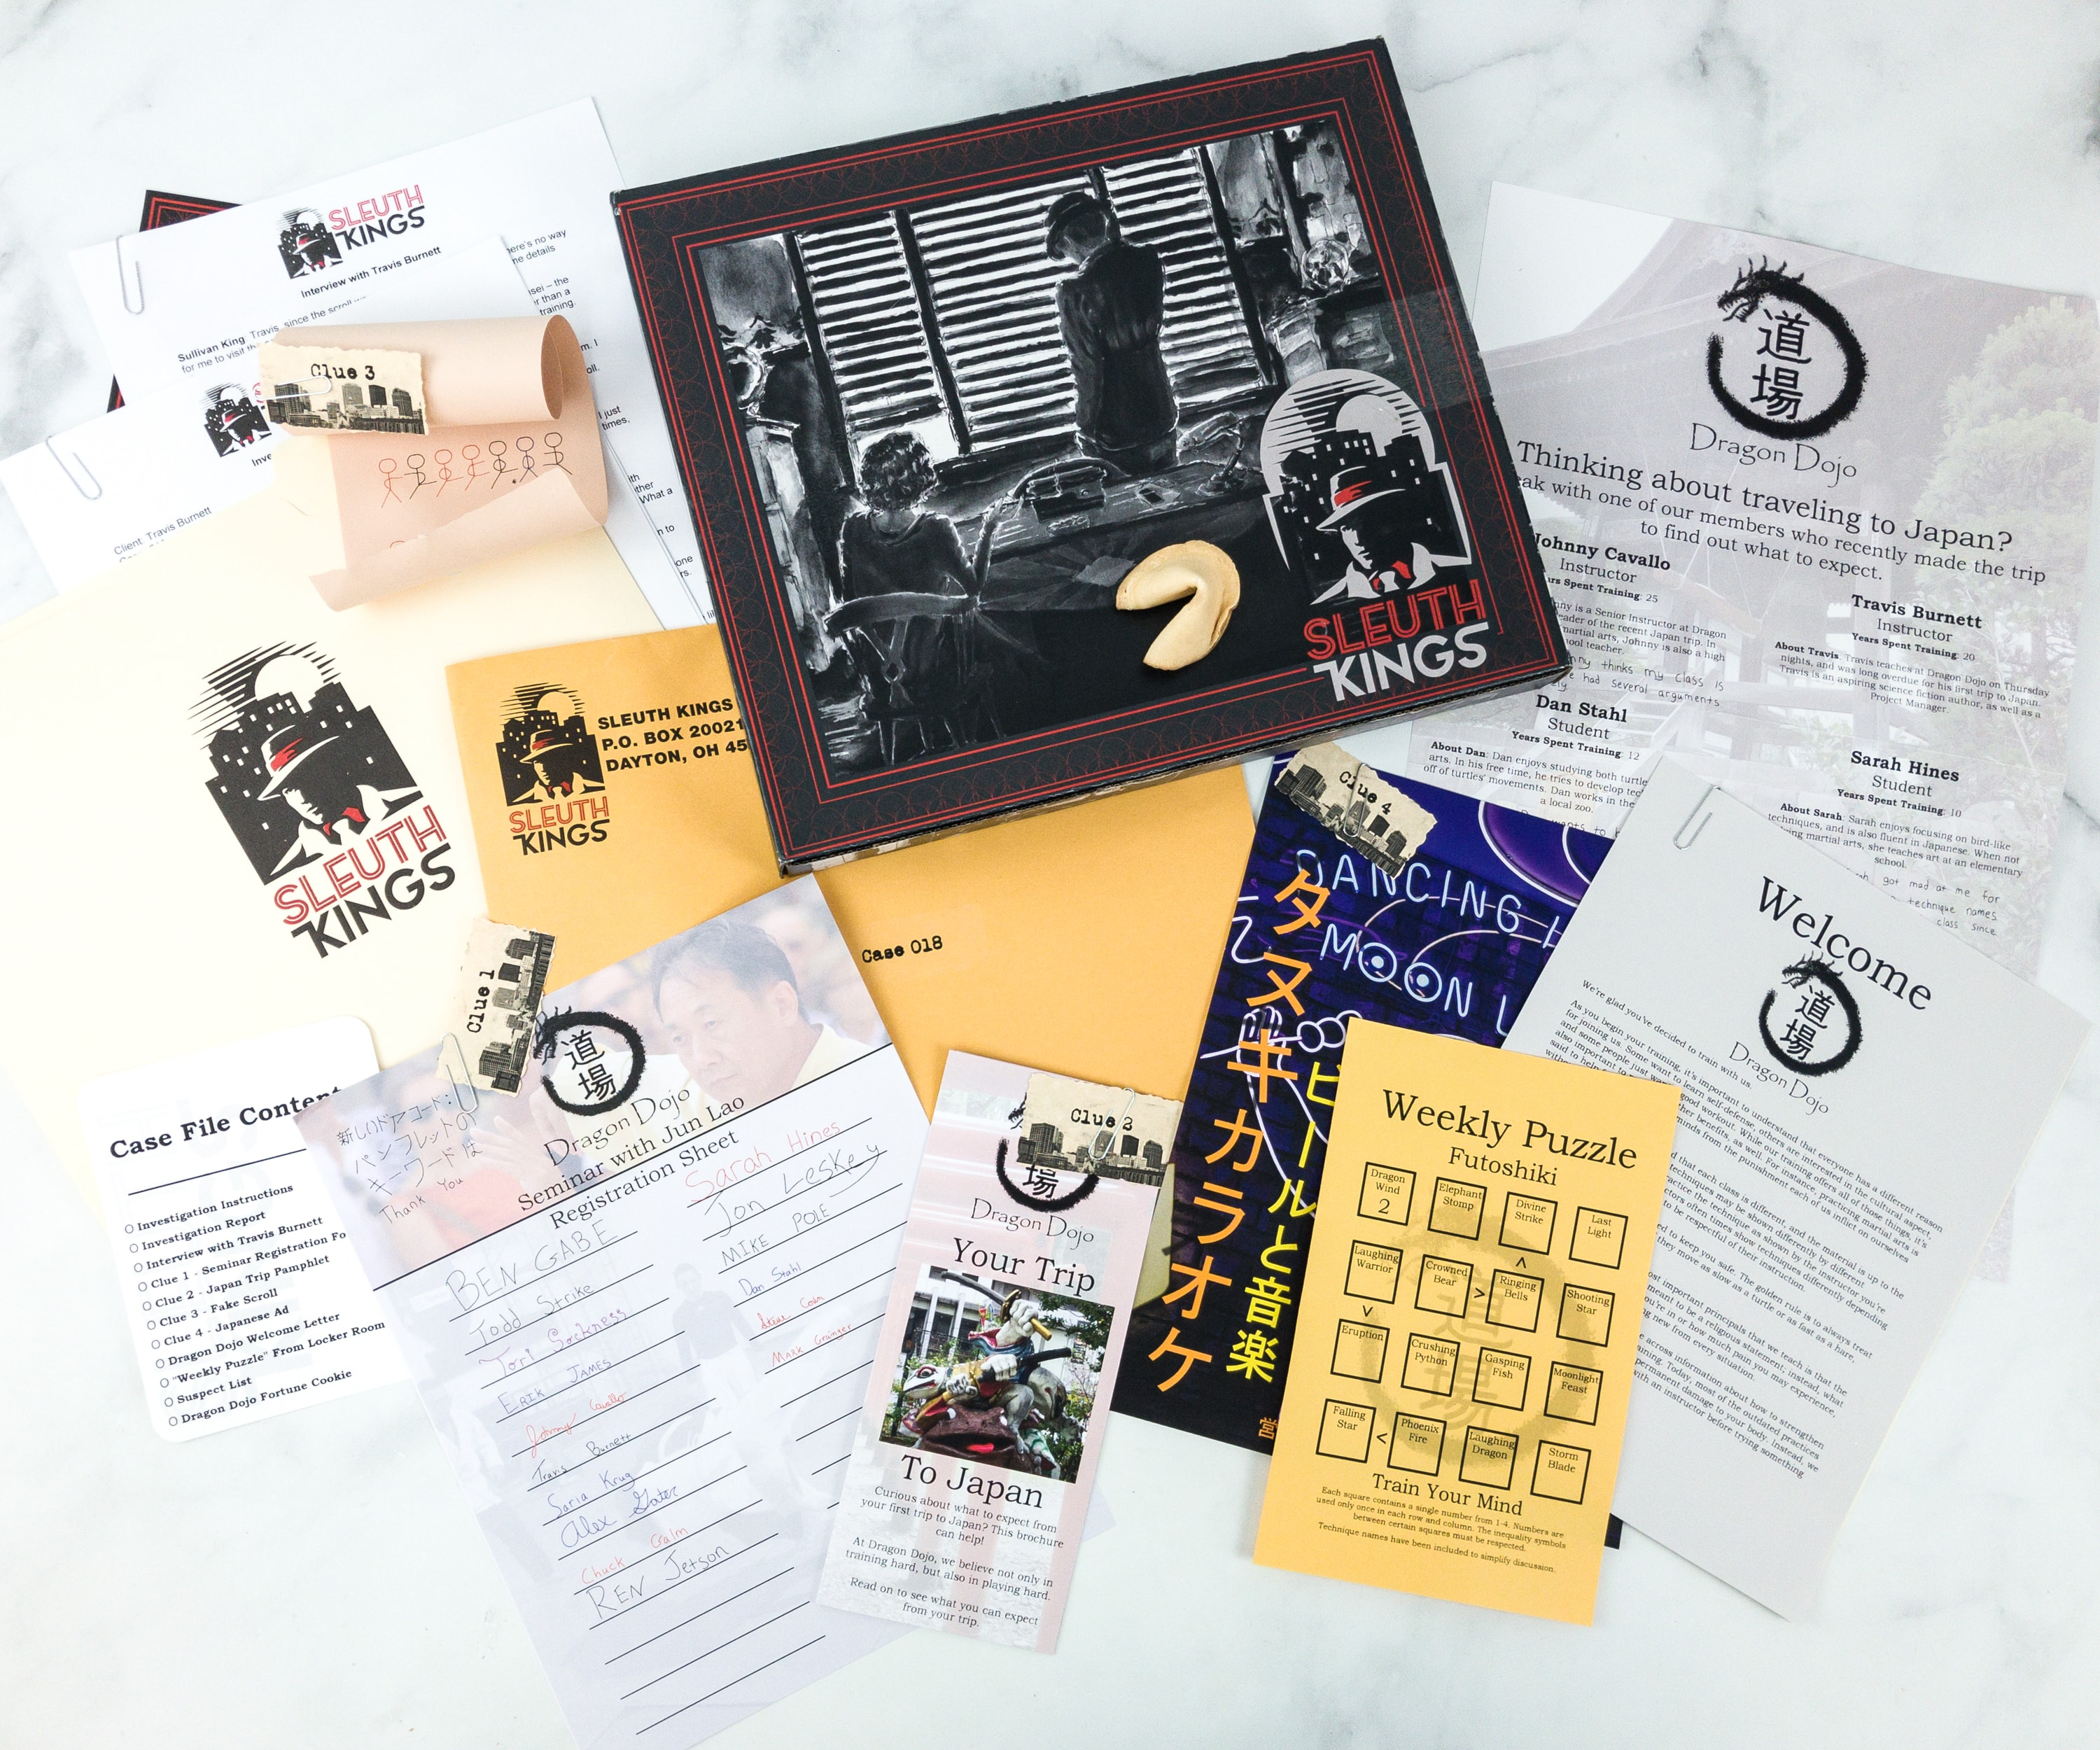 Sleuth Kings Subscription Box Review + Coupons – Case 018 The Stolen Scrolls